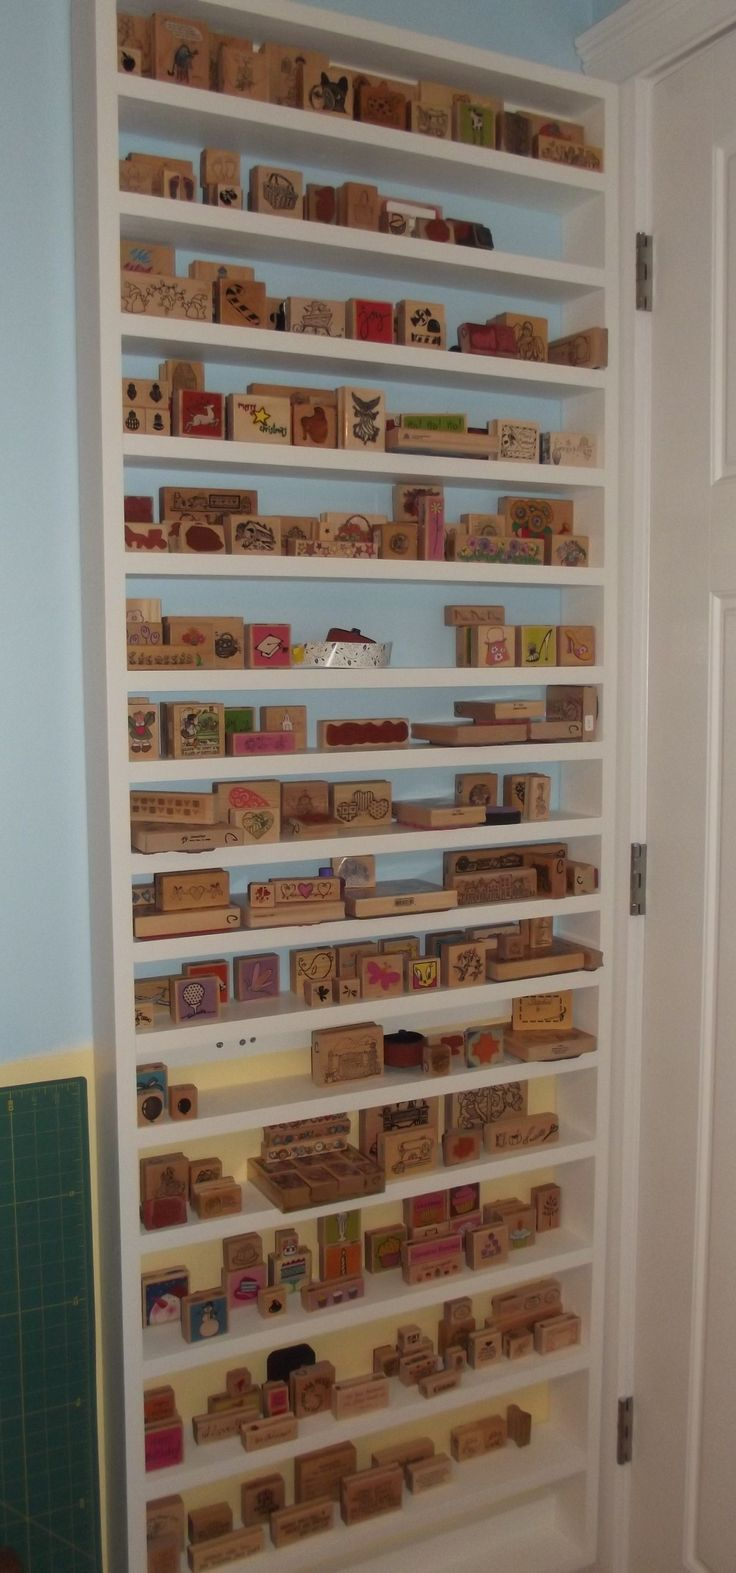 Rubber stamp craft supplies - Shelving For Rubber Stamps This Could Also Be Reseat Into The Wall Between